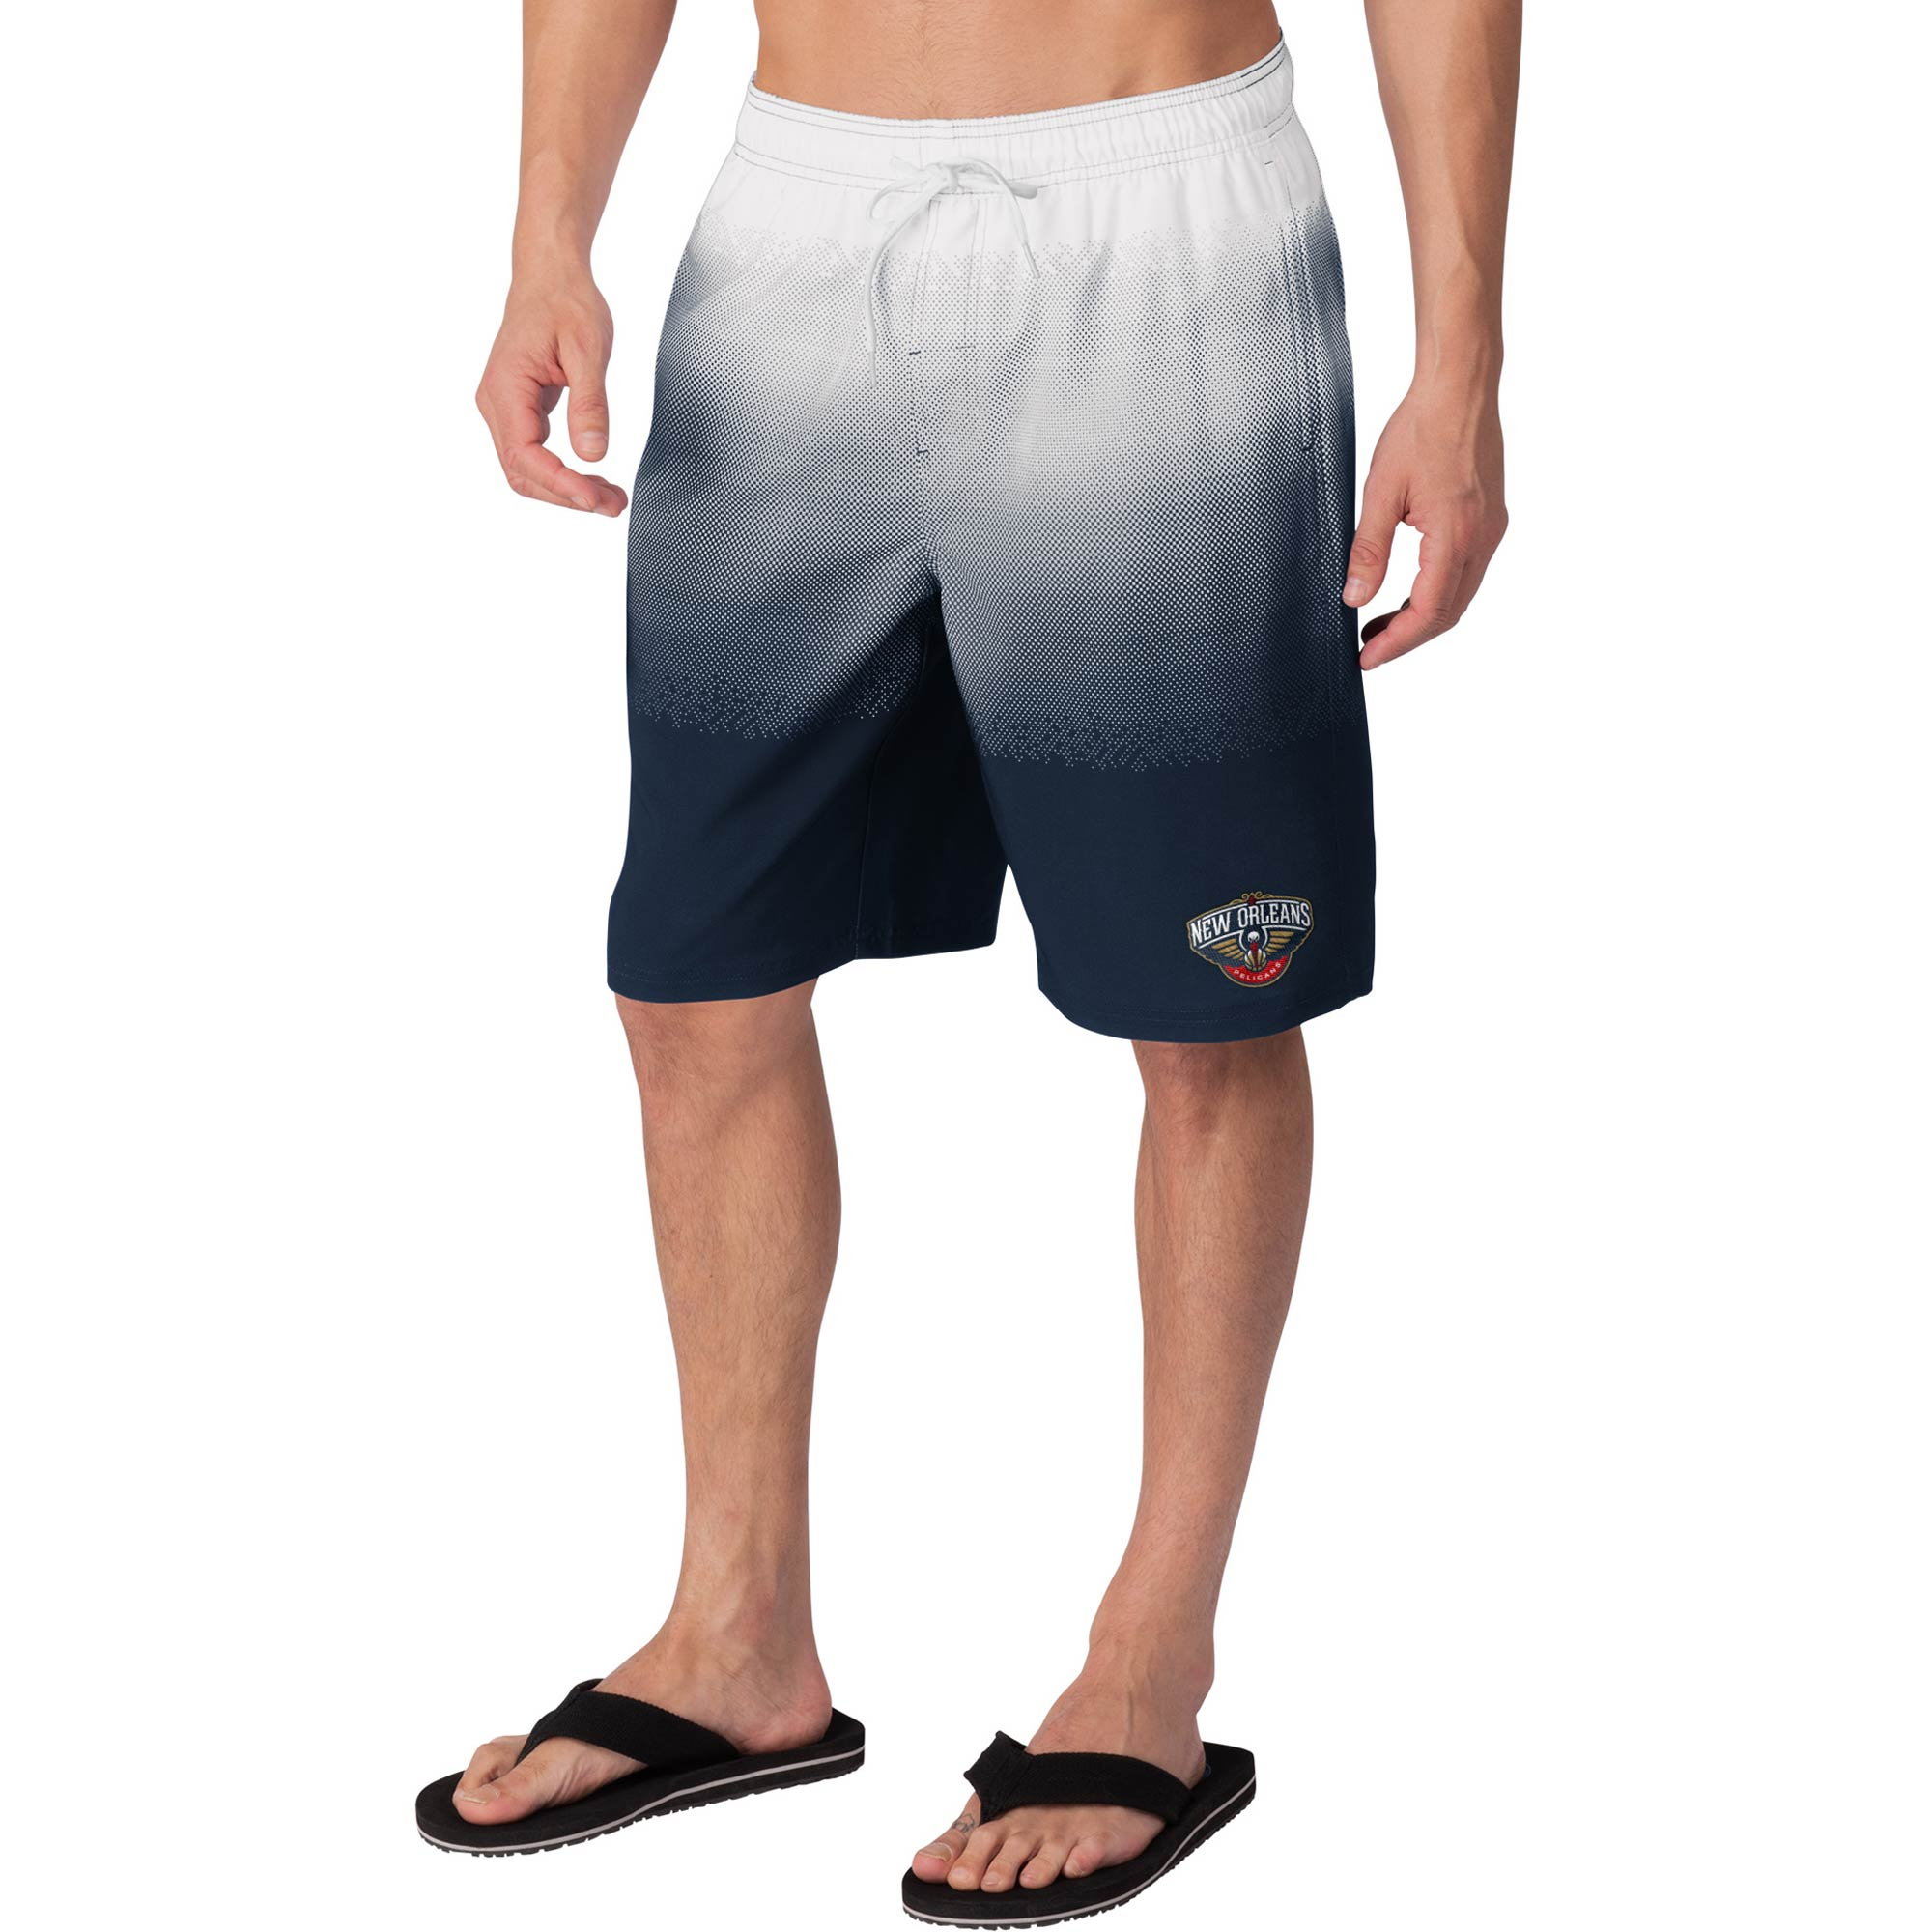 New Orleans Pelicans G-III Sports by Carl Banks Horizon Swim Trunks - Navy